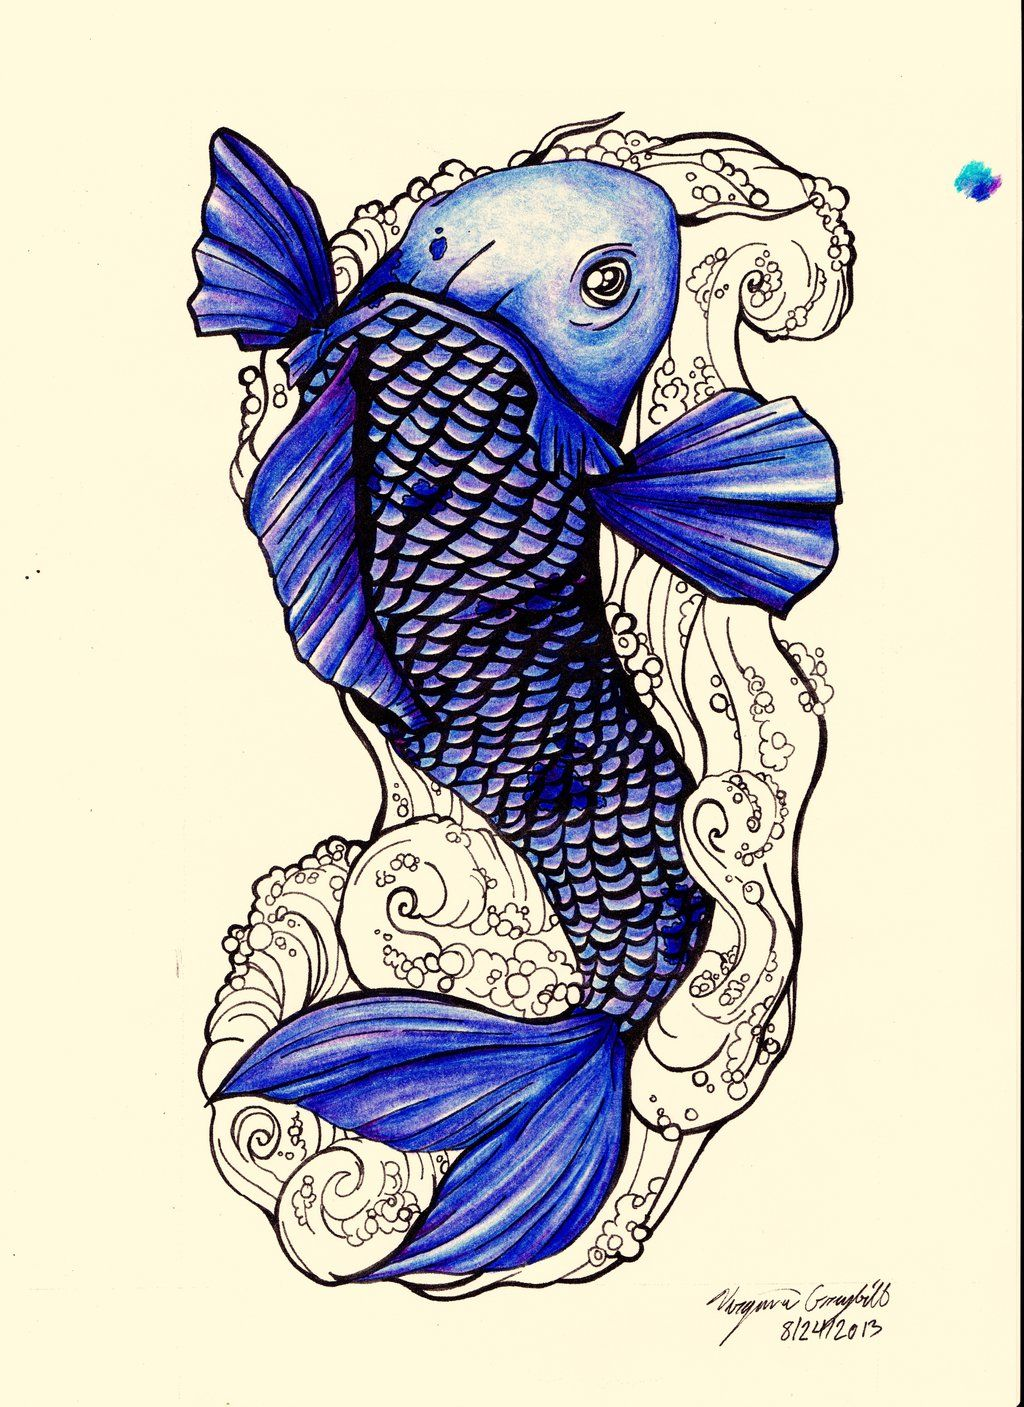 Designs interfaces tattoo design 2013 2015 ginniegii my for Blue koi fish meaning